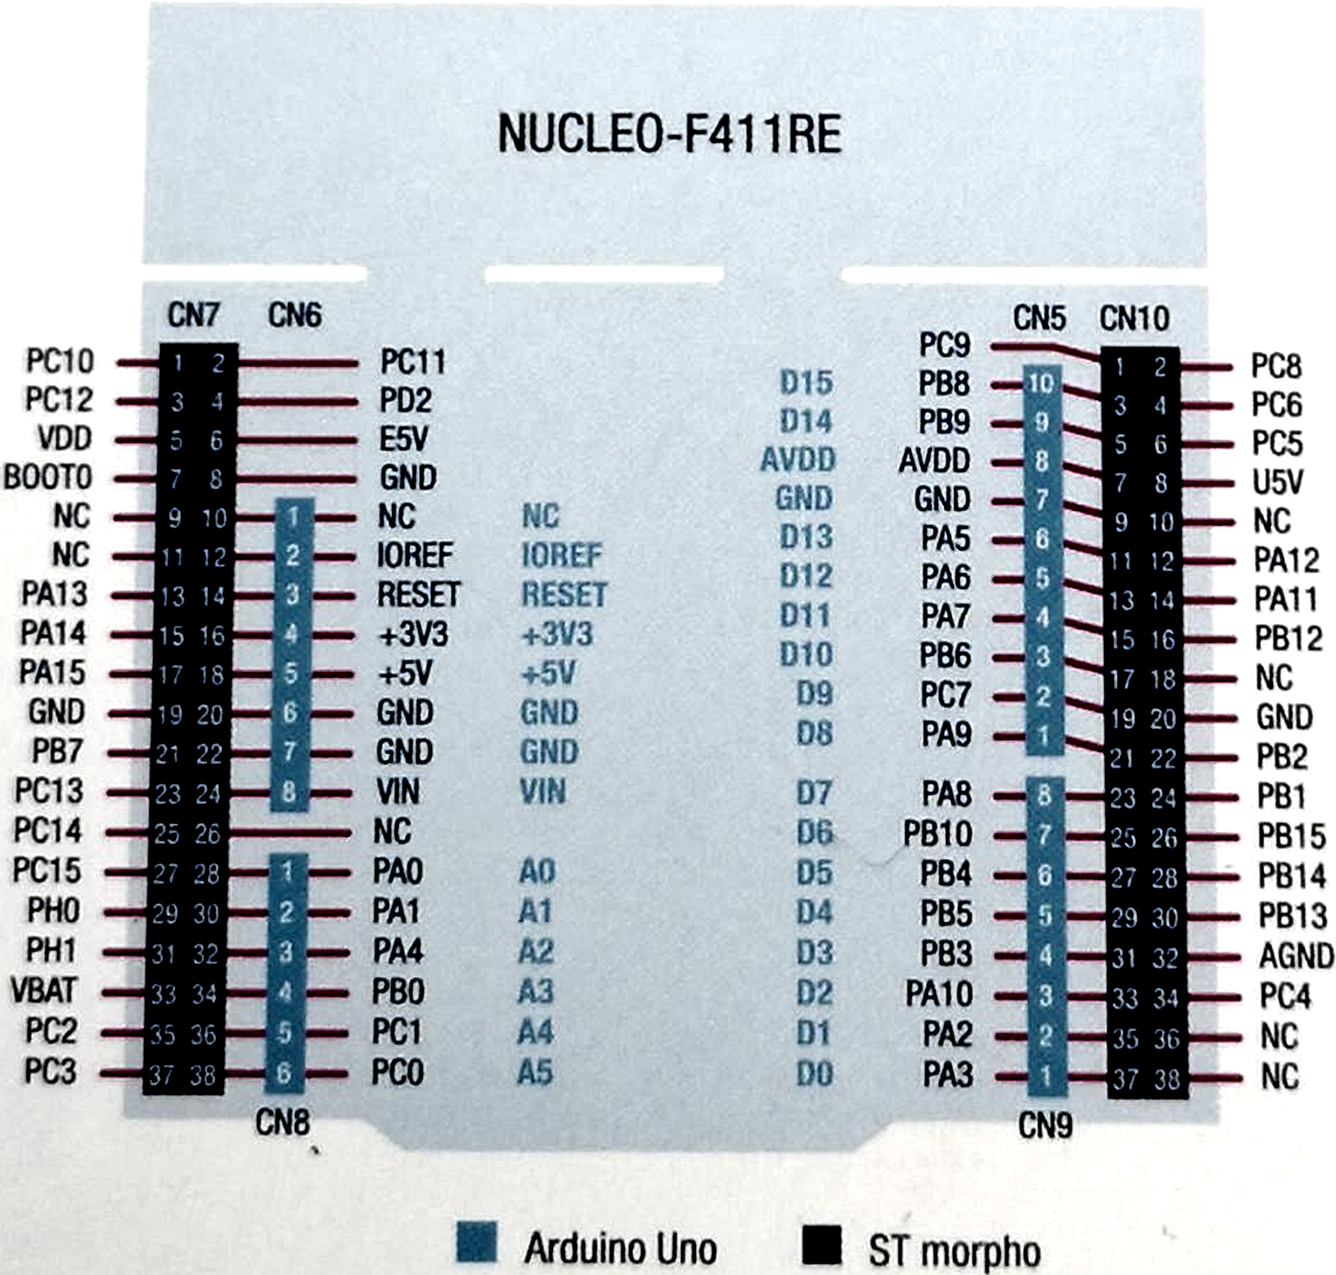 Appendix: STM32 Nucleo-F411RE Pin Layout - ARM-based Microcontroller